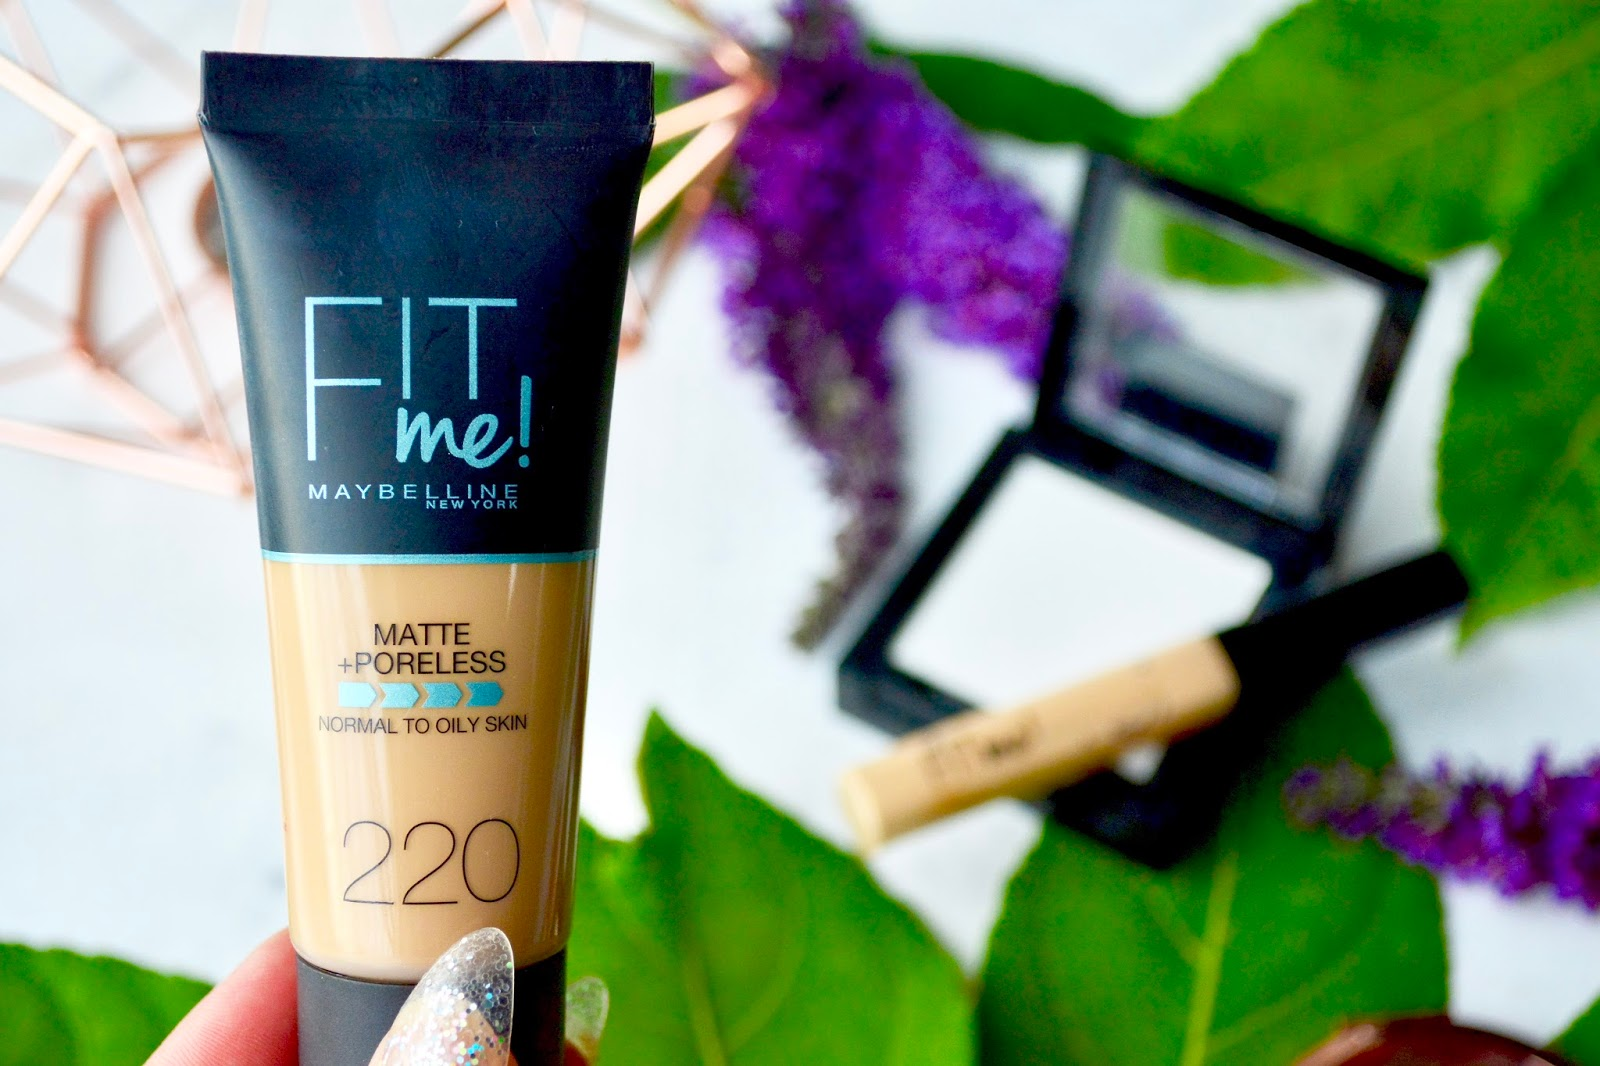 Maybelline Fit Me Makeup Range | Foundation, Concealer & Powder